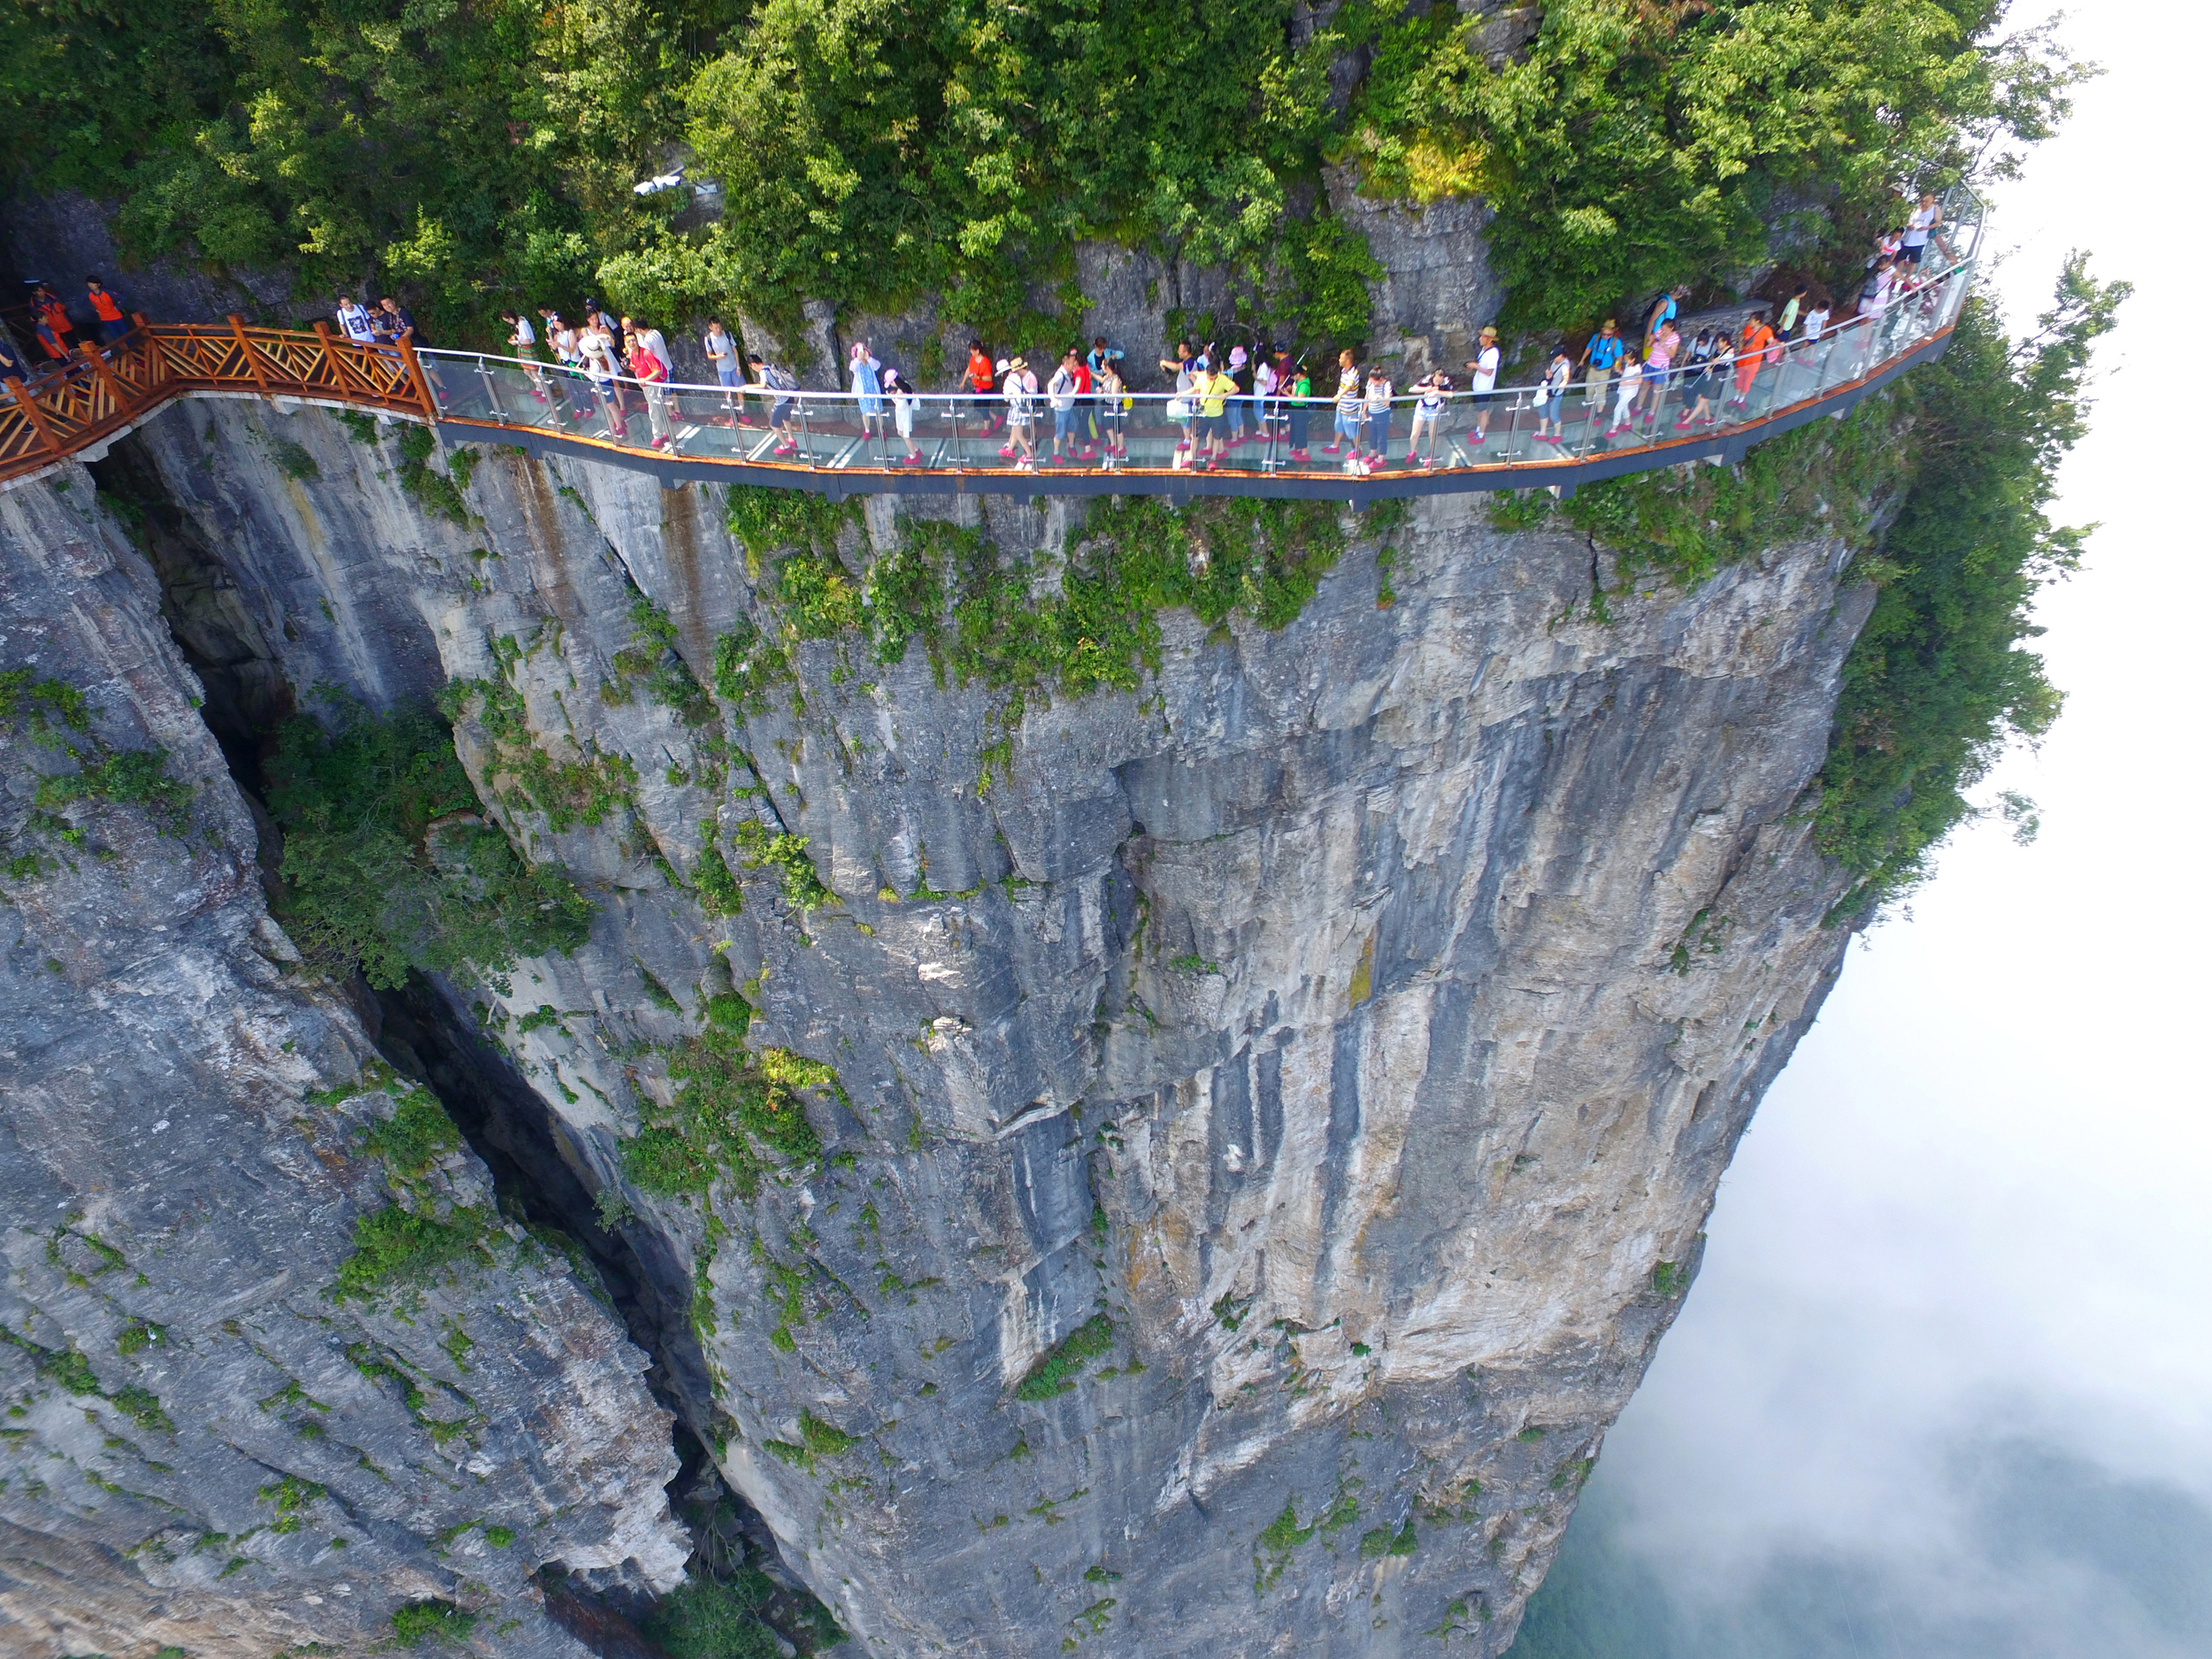 China's terrifying new glass walkway suspends tourists over a 1500 foot gorge